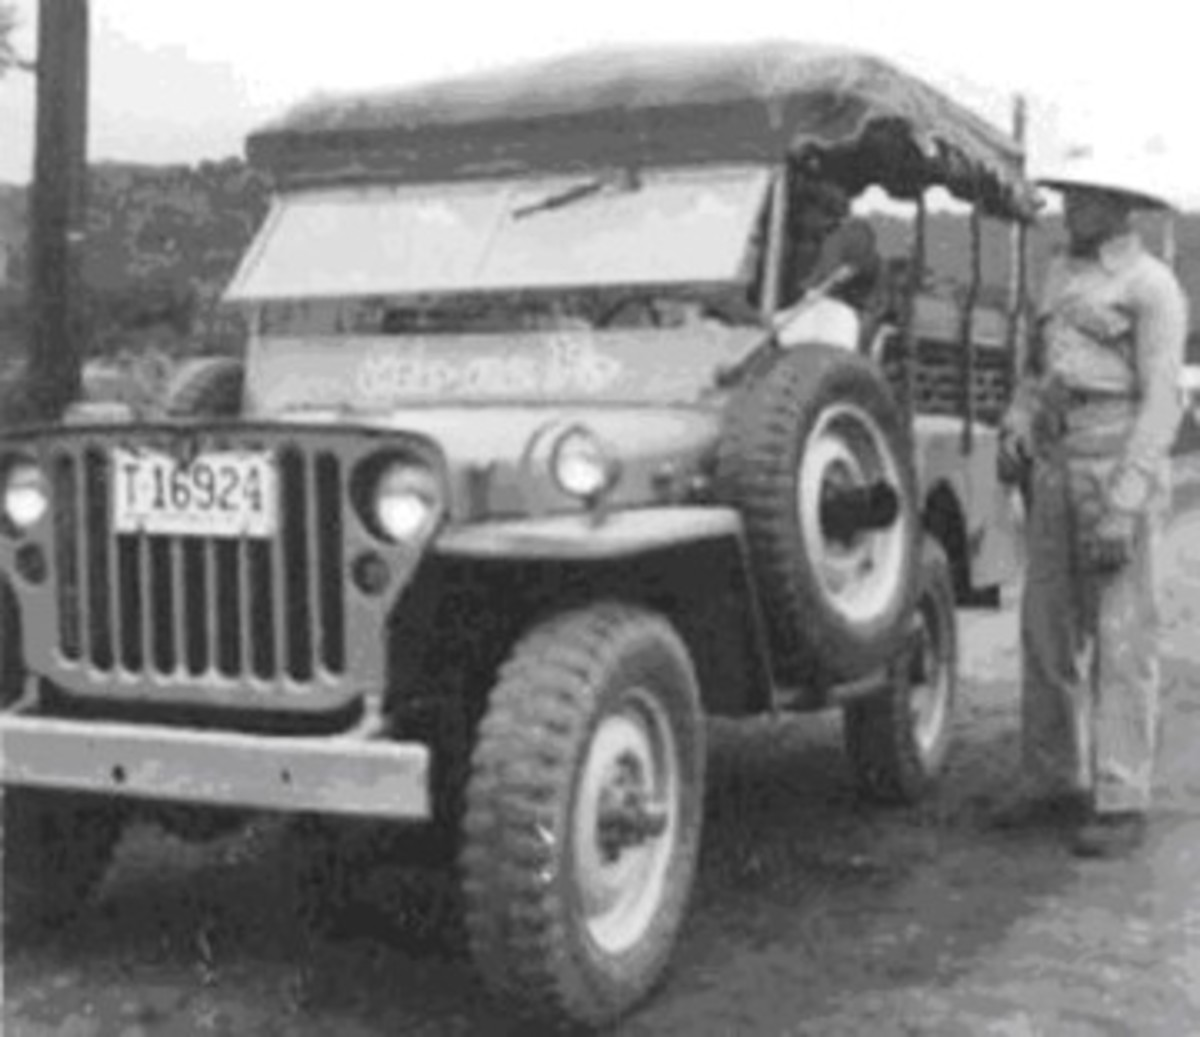 A very early GPW jeepney with a fringe on the top that sported a solid framework.